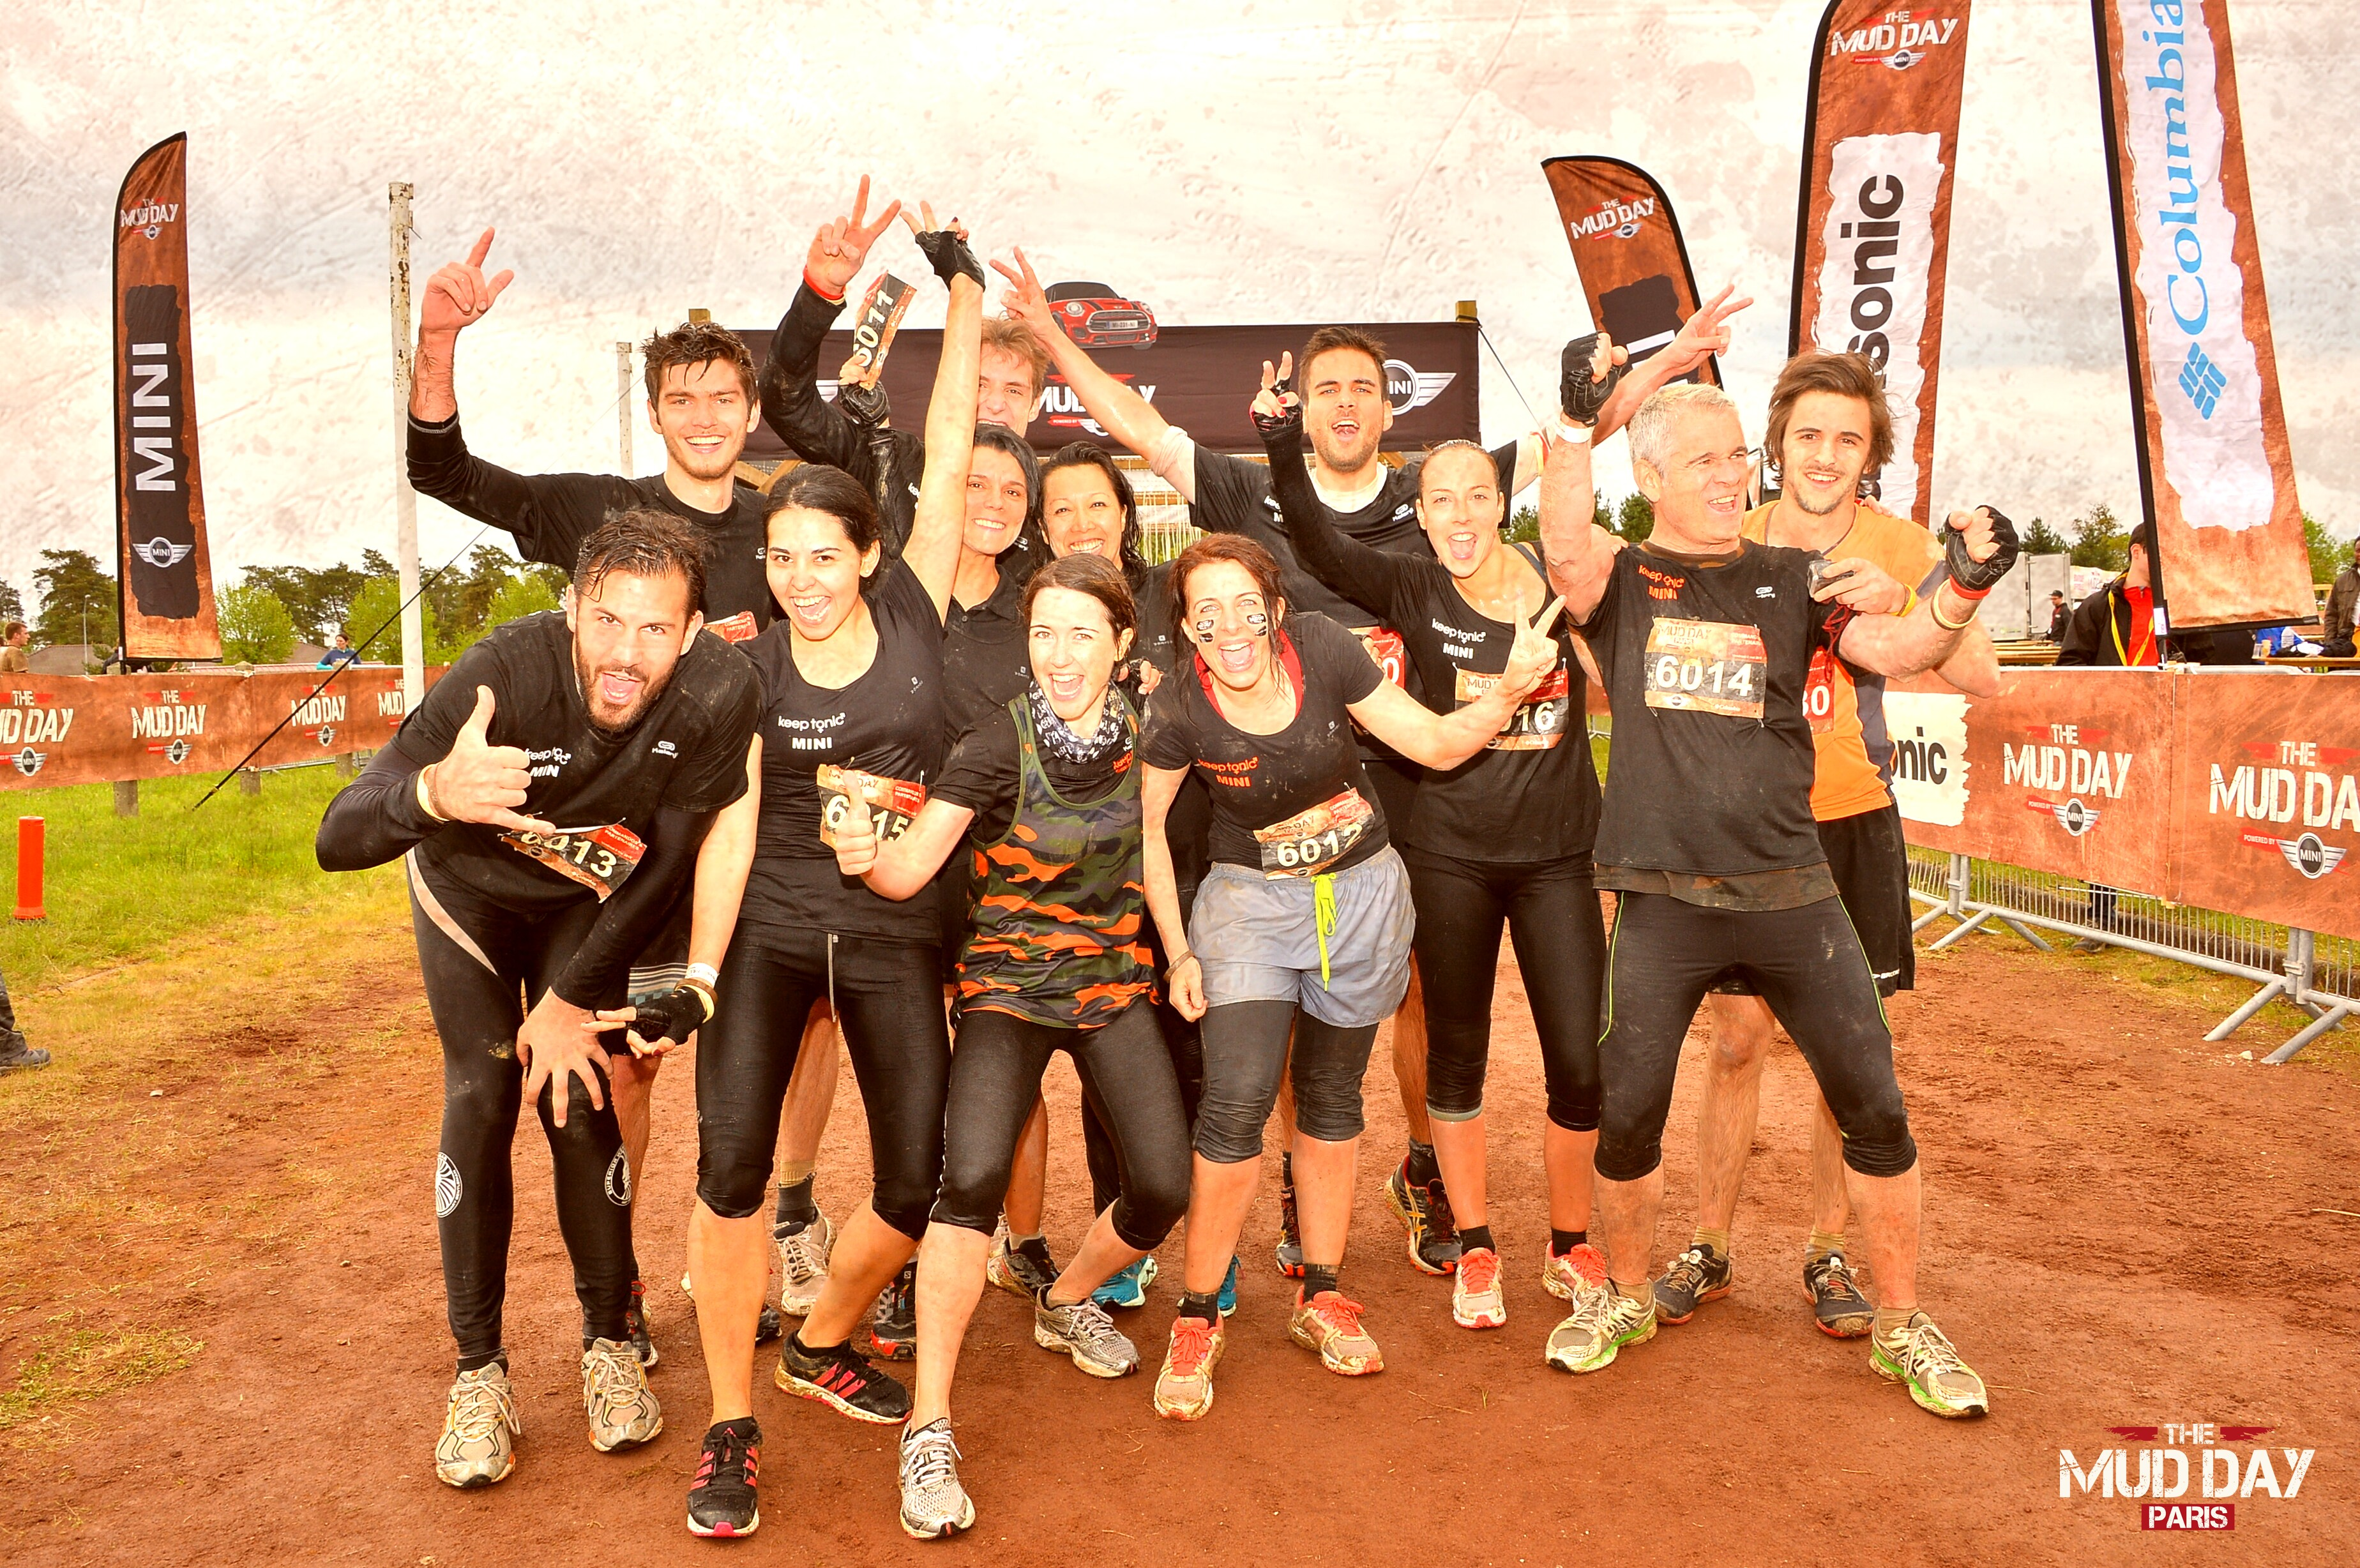 22-MUDDAY-PARIS2015-vENDREDI-YB-182